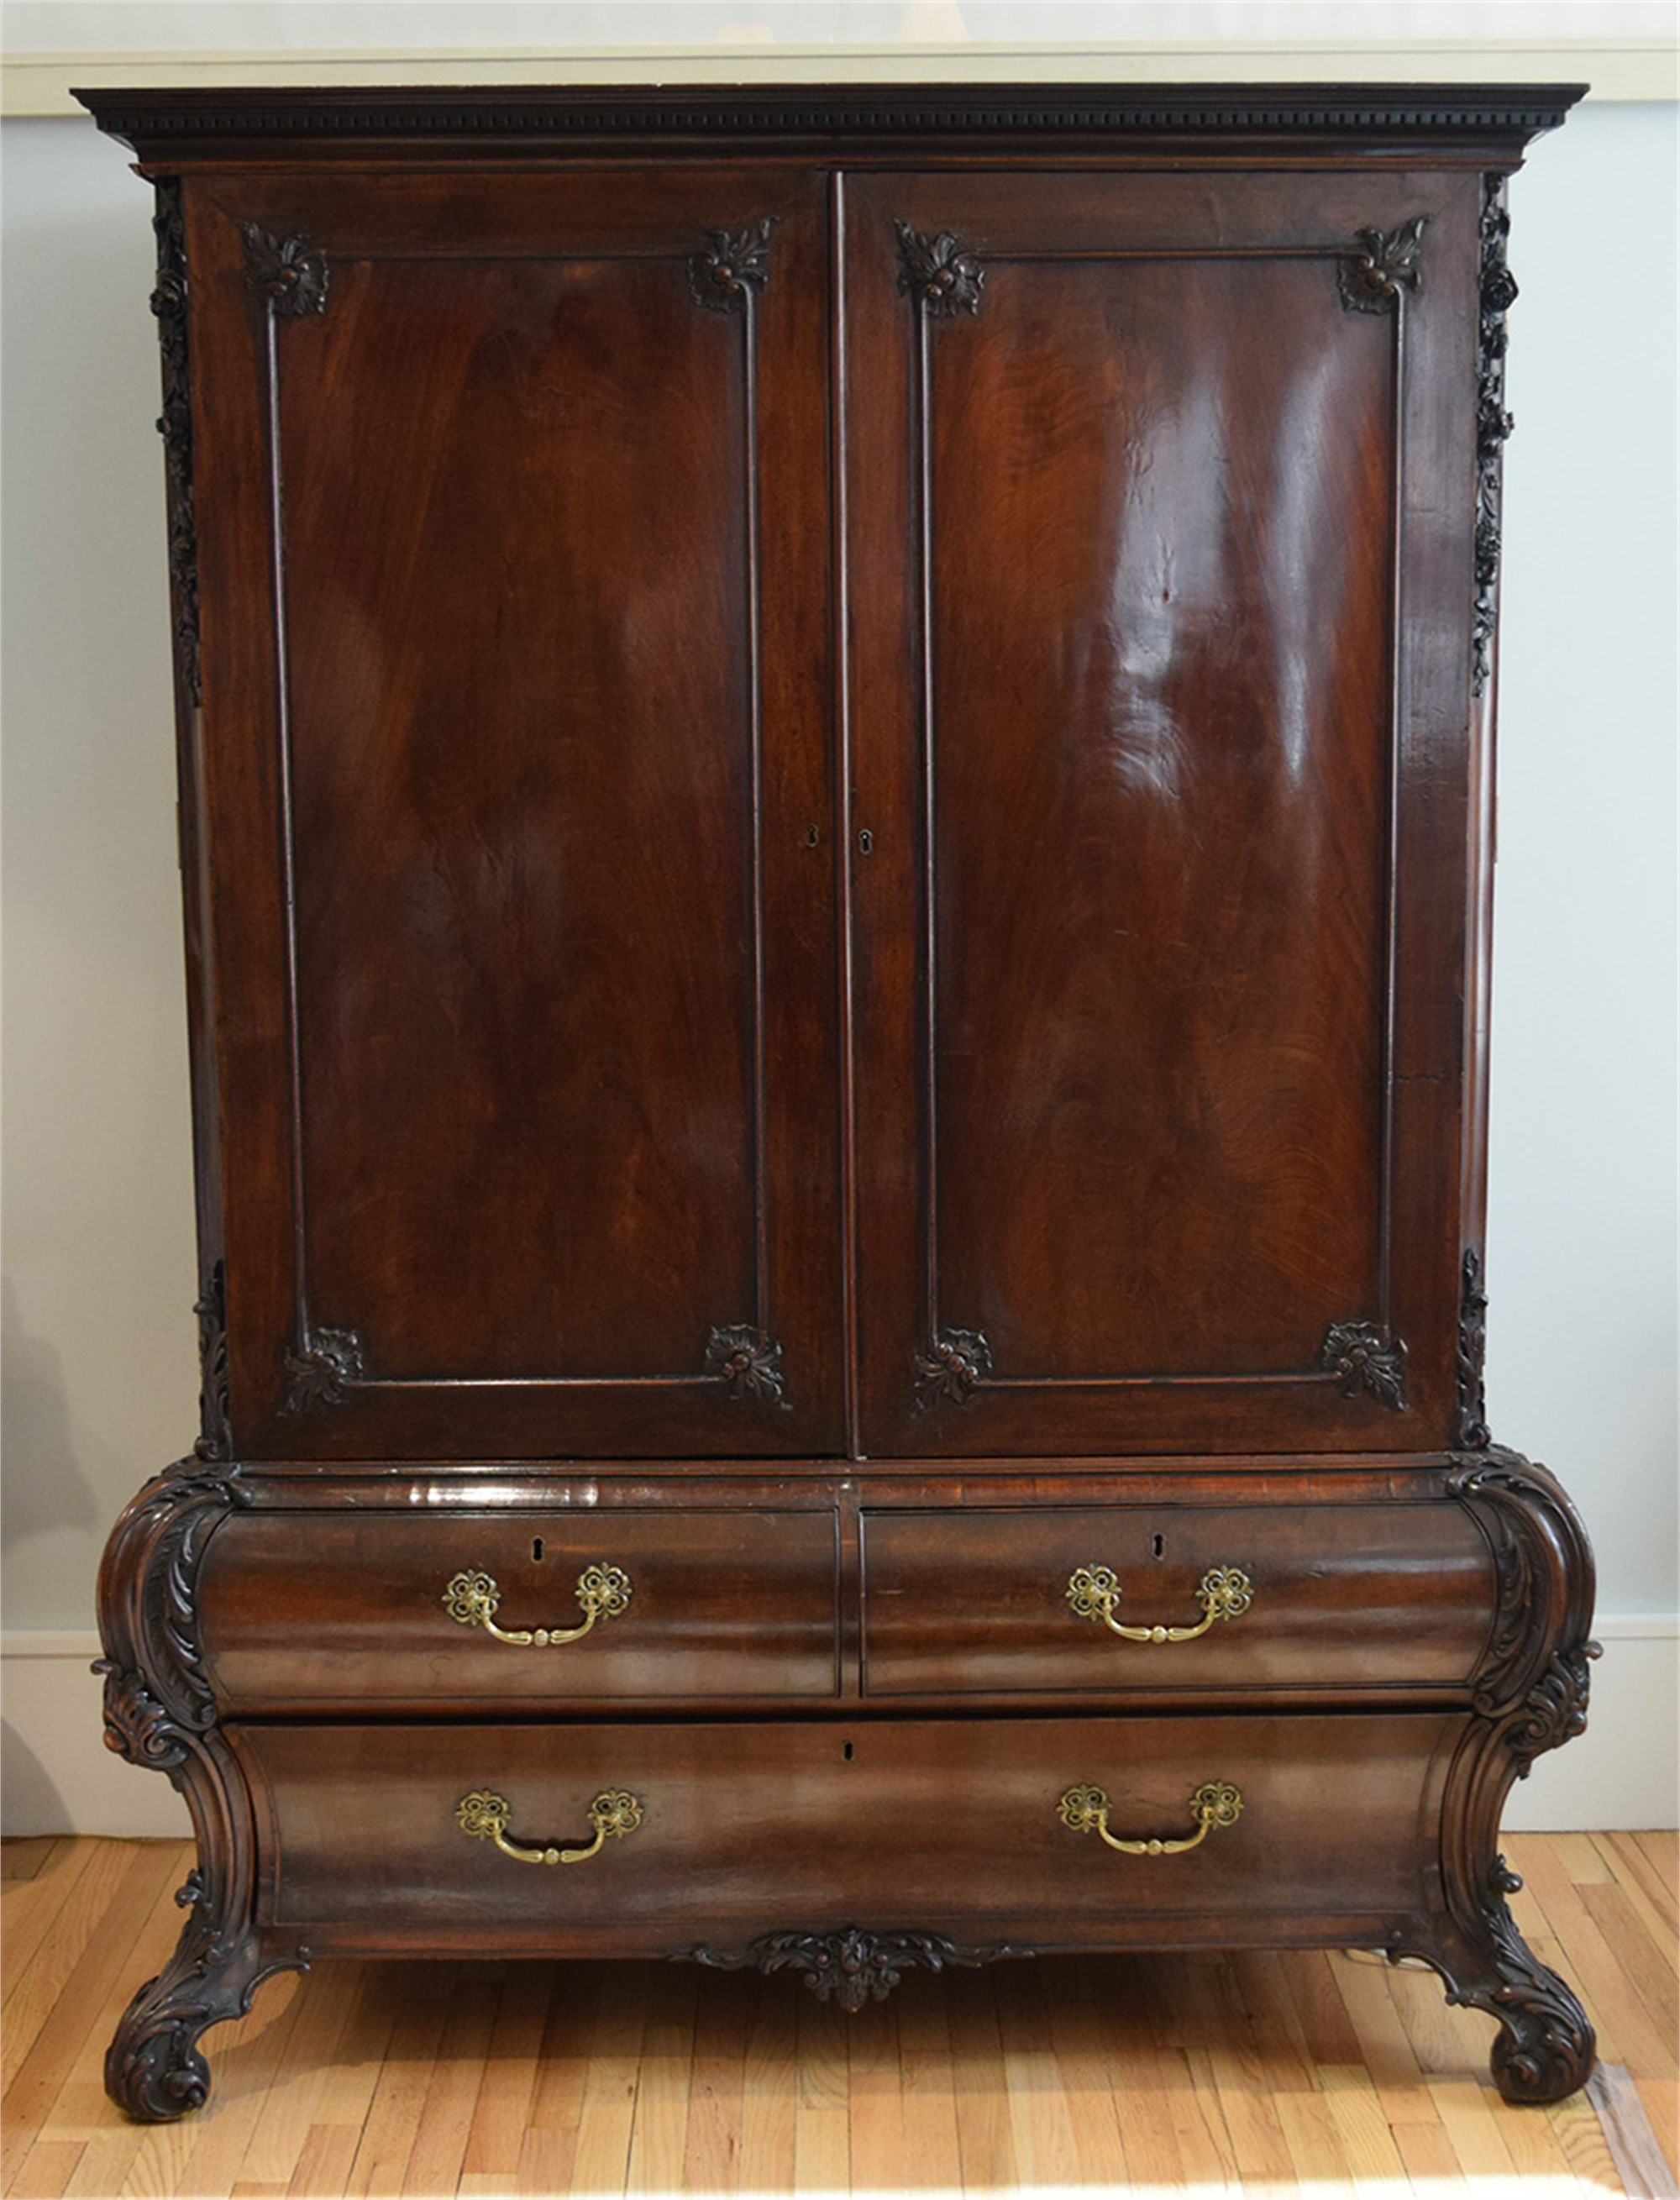 TWO PART WARDROBE ATTRIB. TO CHIPPENDALE